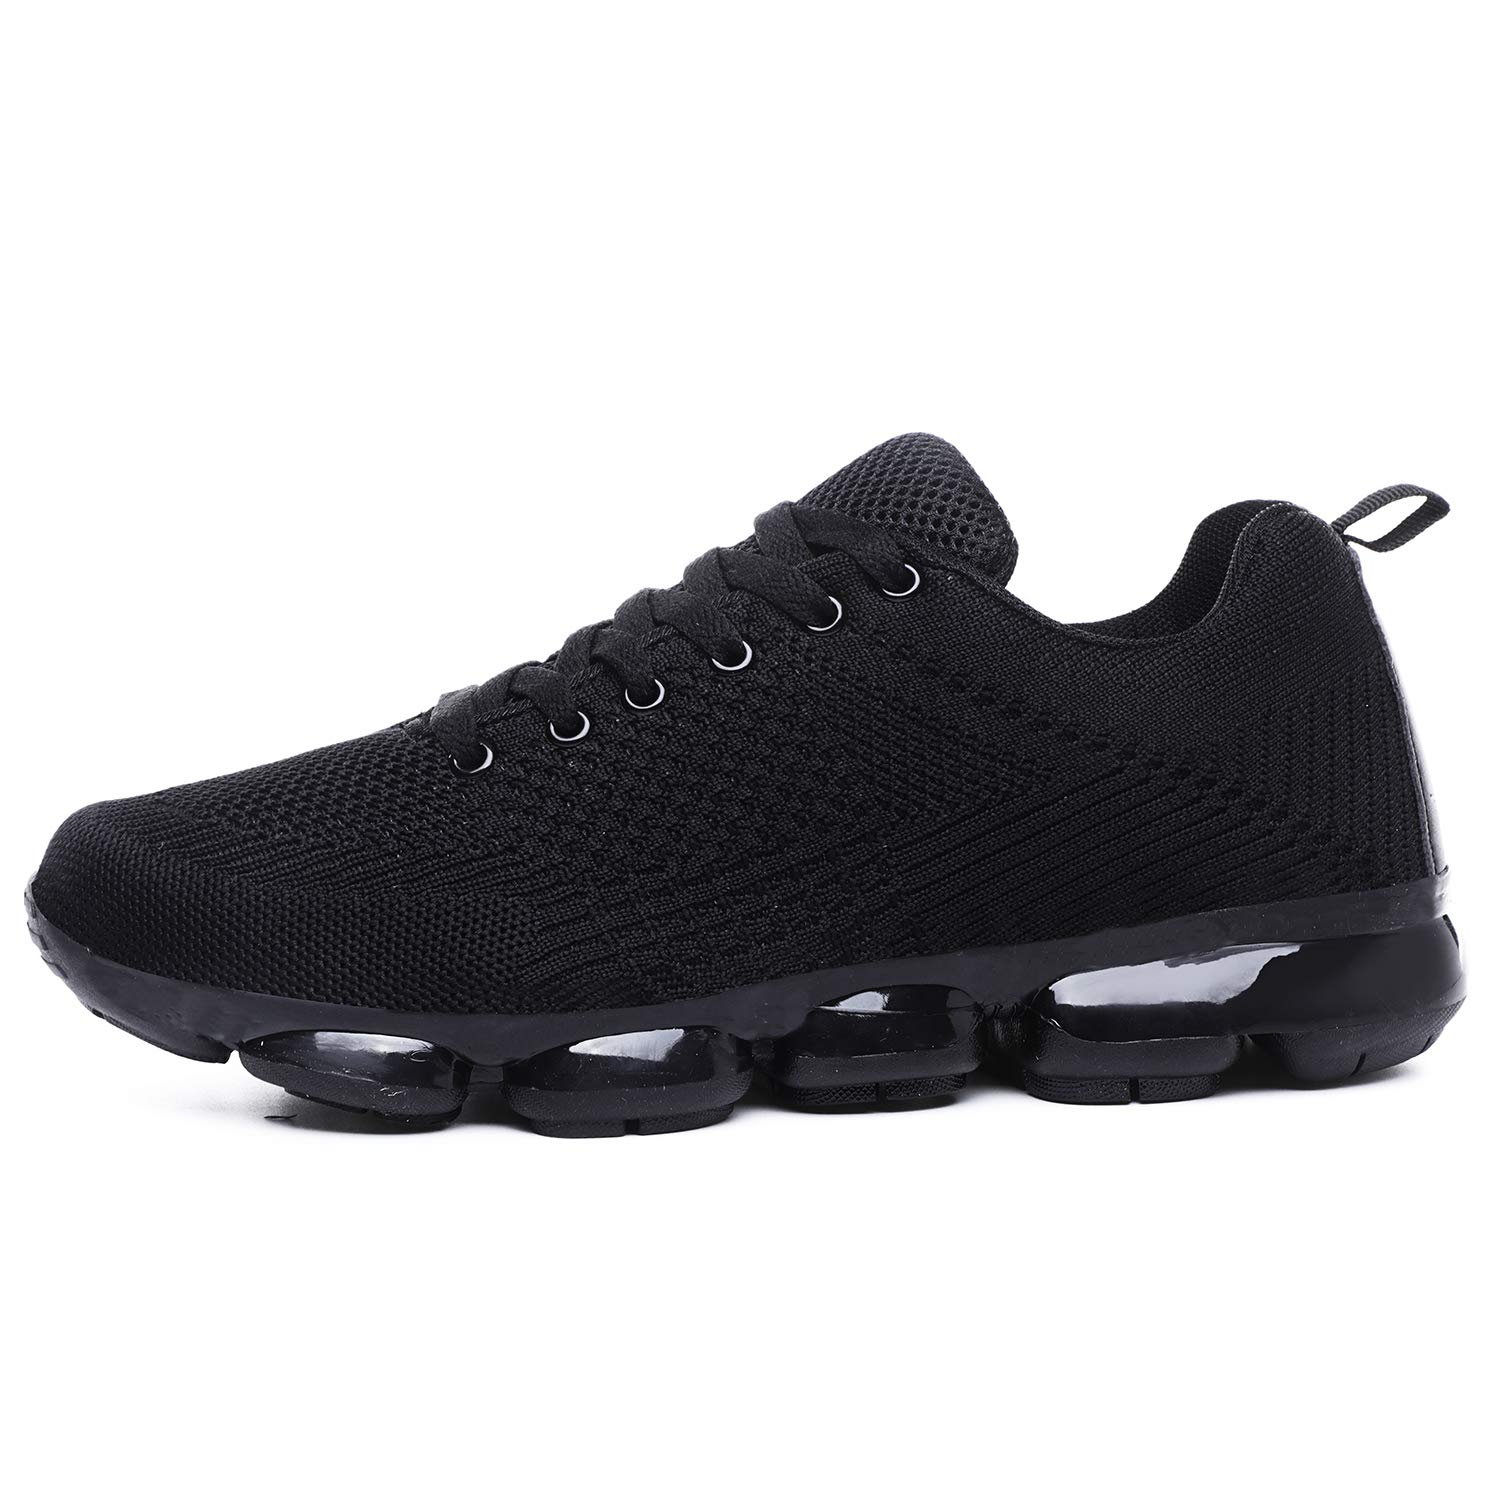 promo code d73c2 e792a Mens Shock Absorbing Air Running Trainers Jogging Gym Fitness Trainer New  Shoes Sizes 7-12 UK